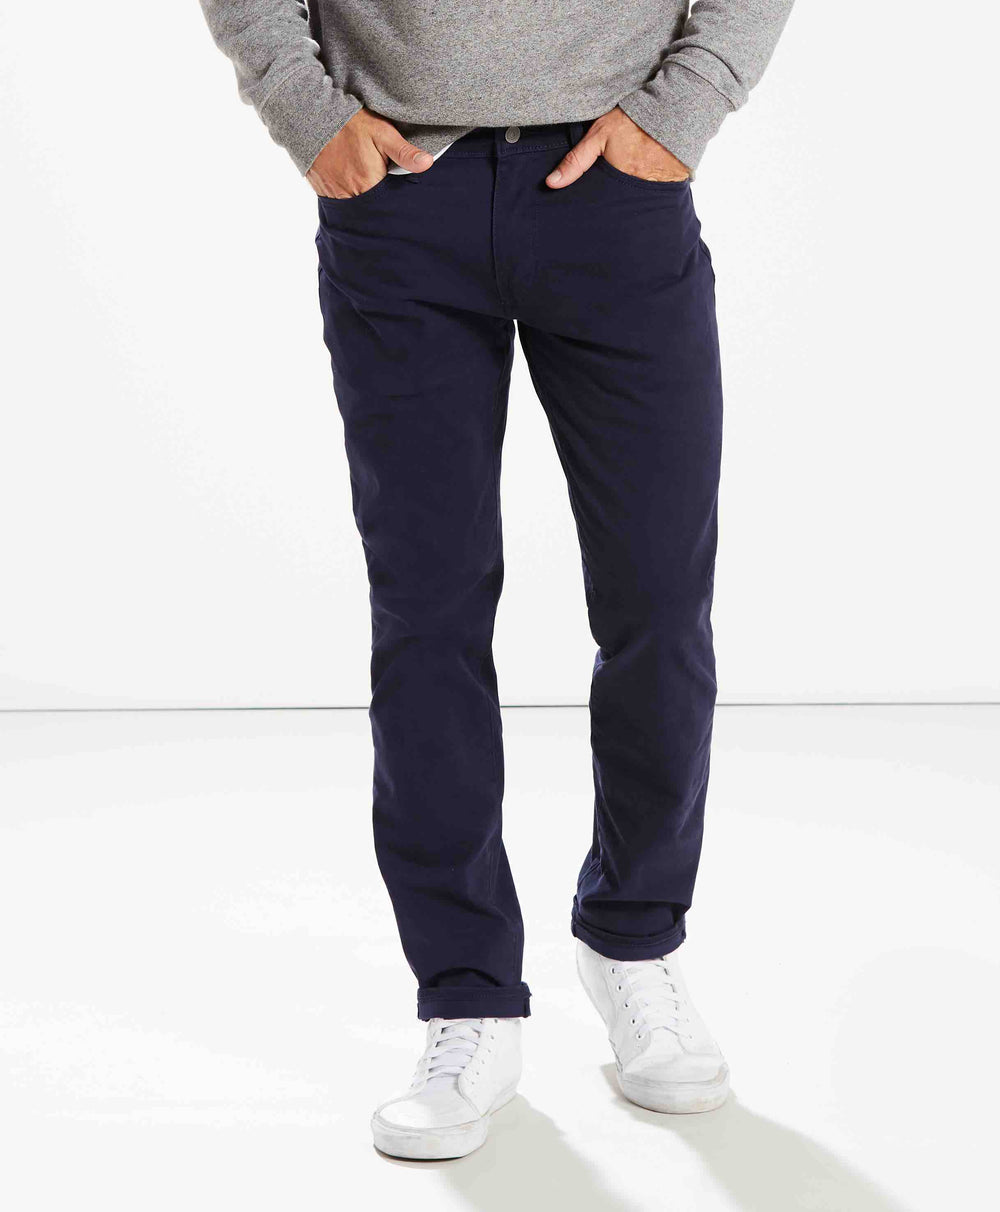 511 SLIM FIT NIGHTWATCH BLUE BISTR